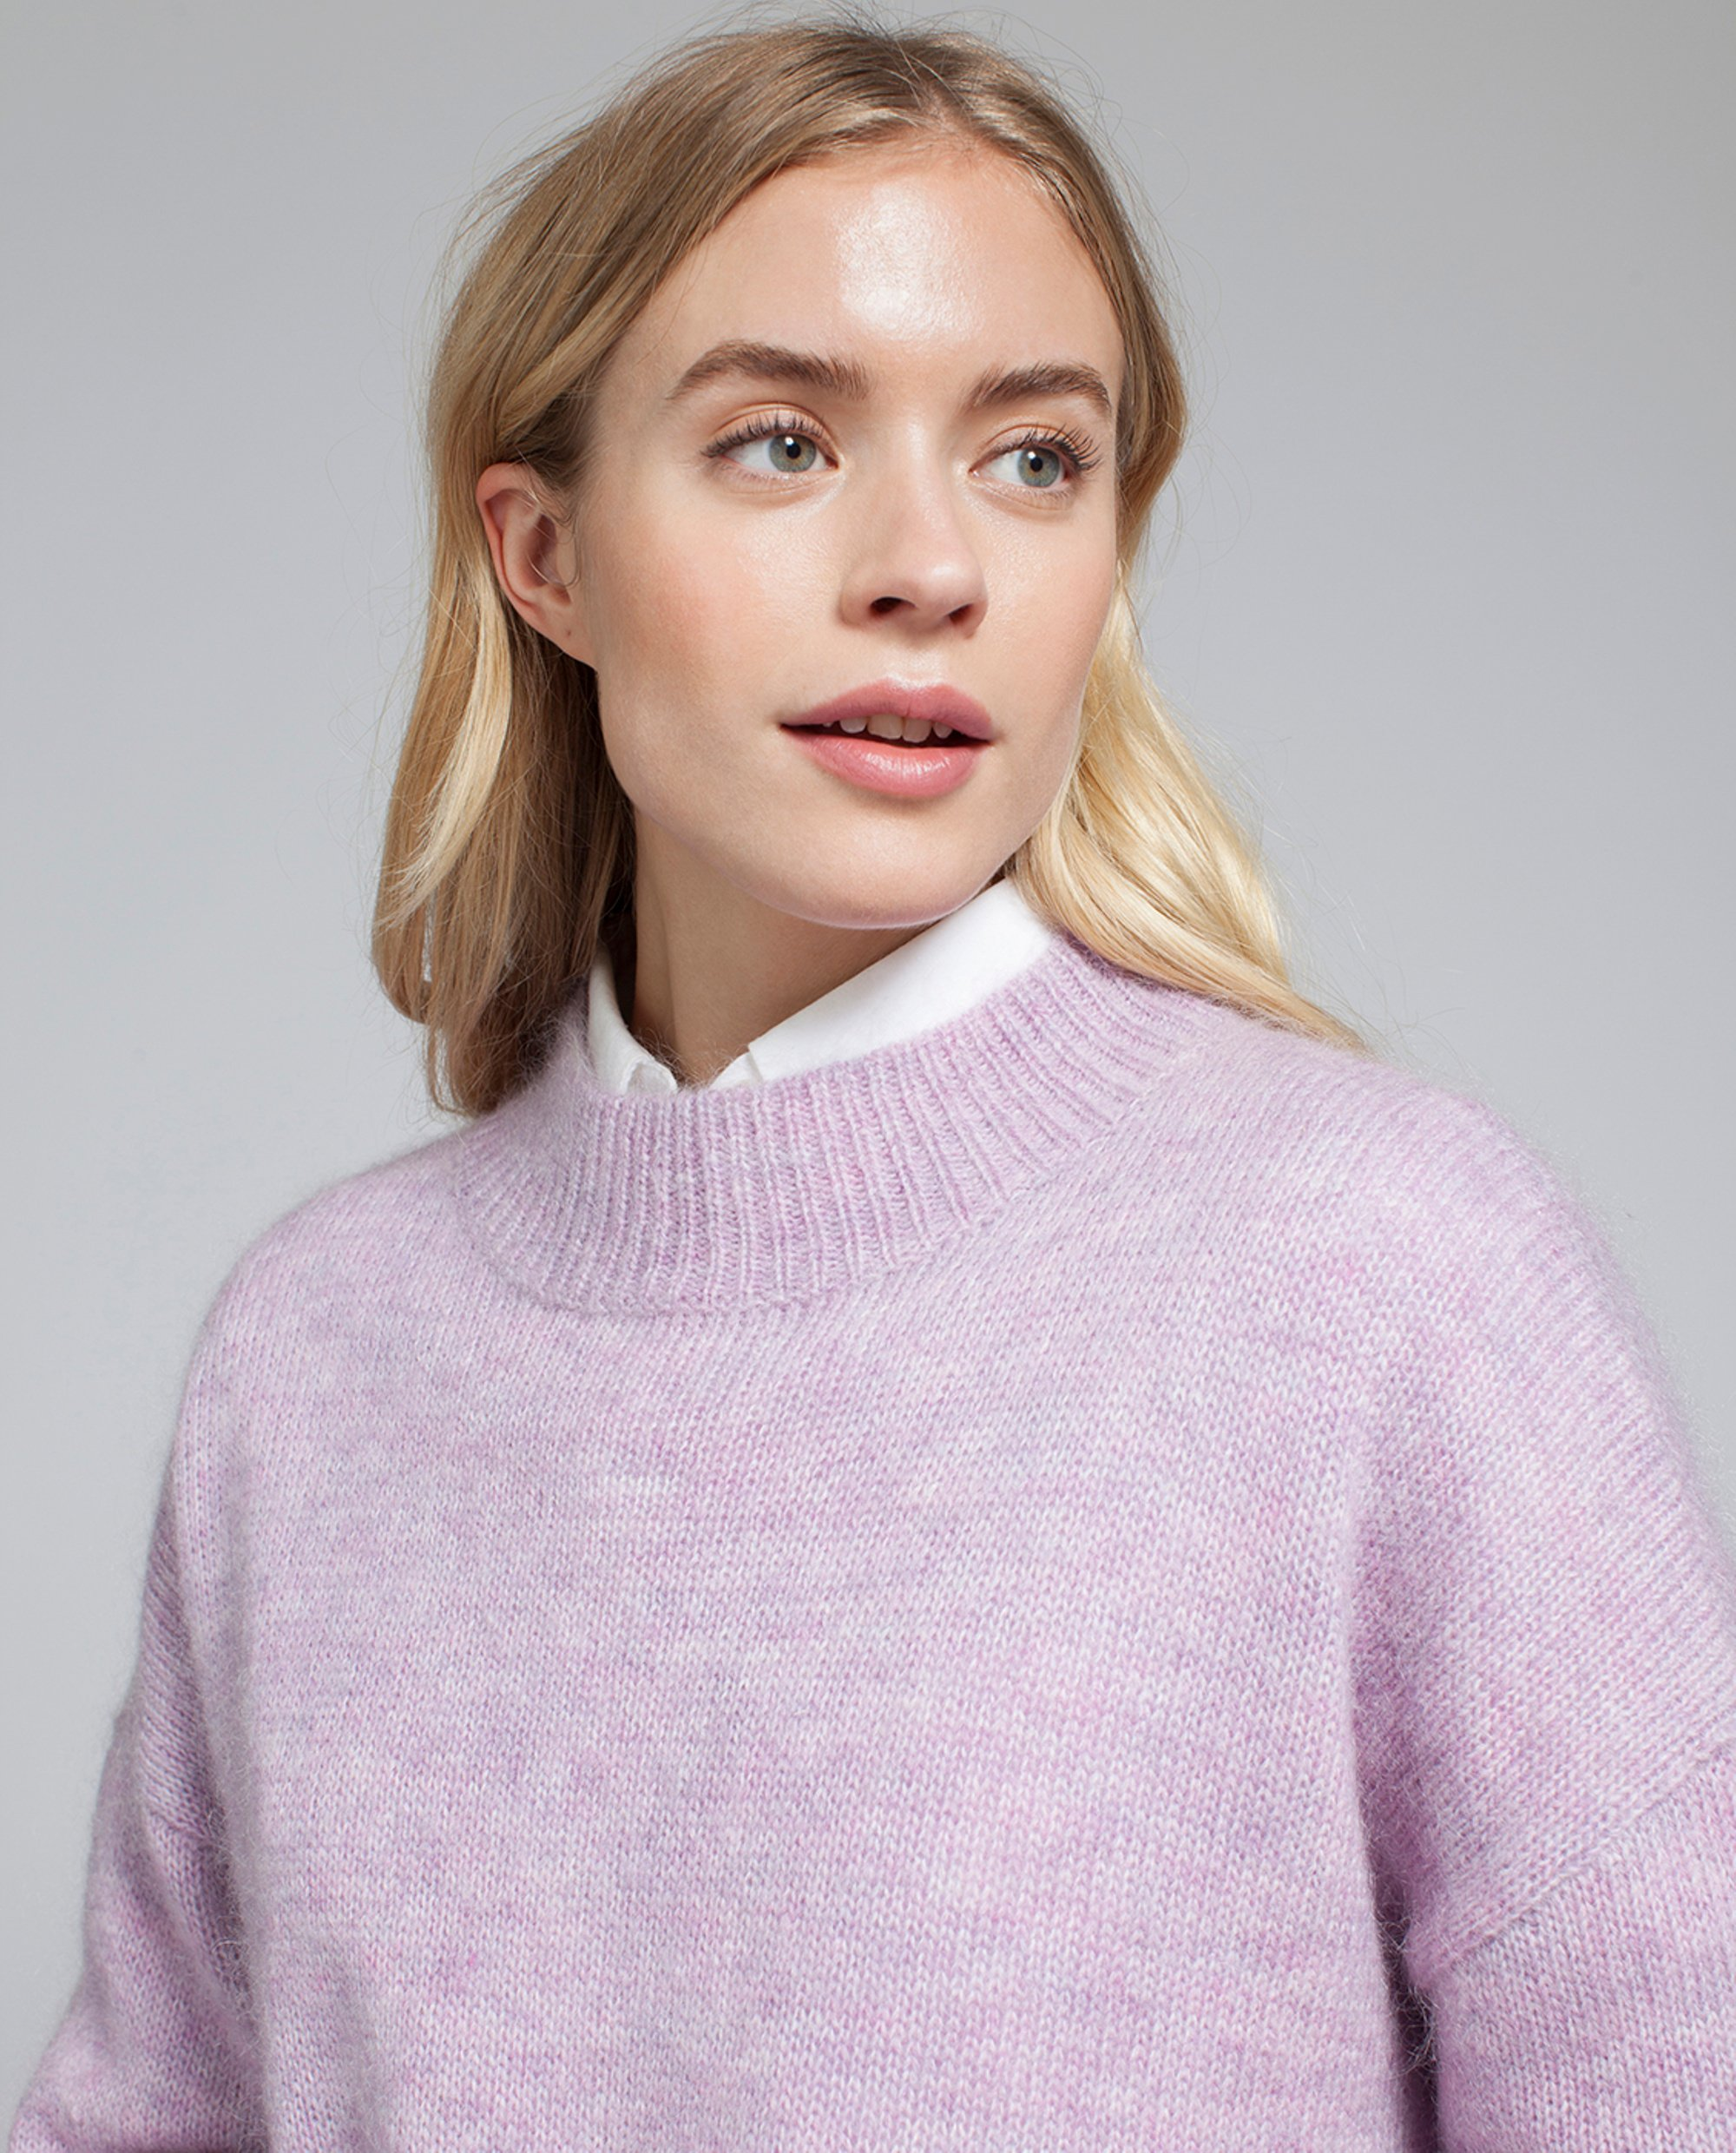 Laila Mohair Sweater, Pastel Lilac